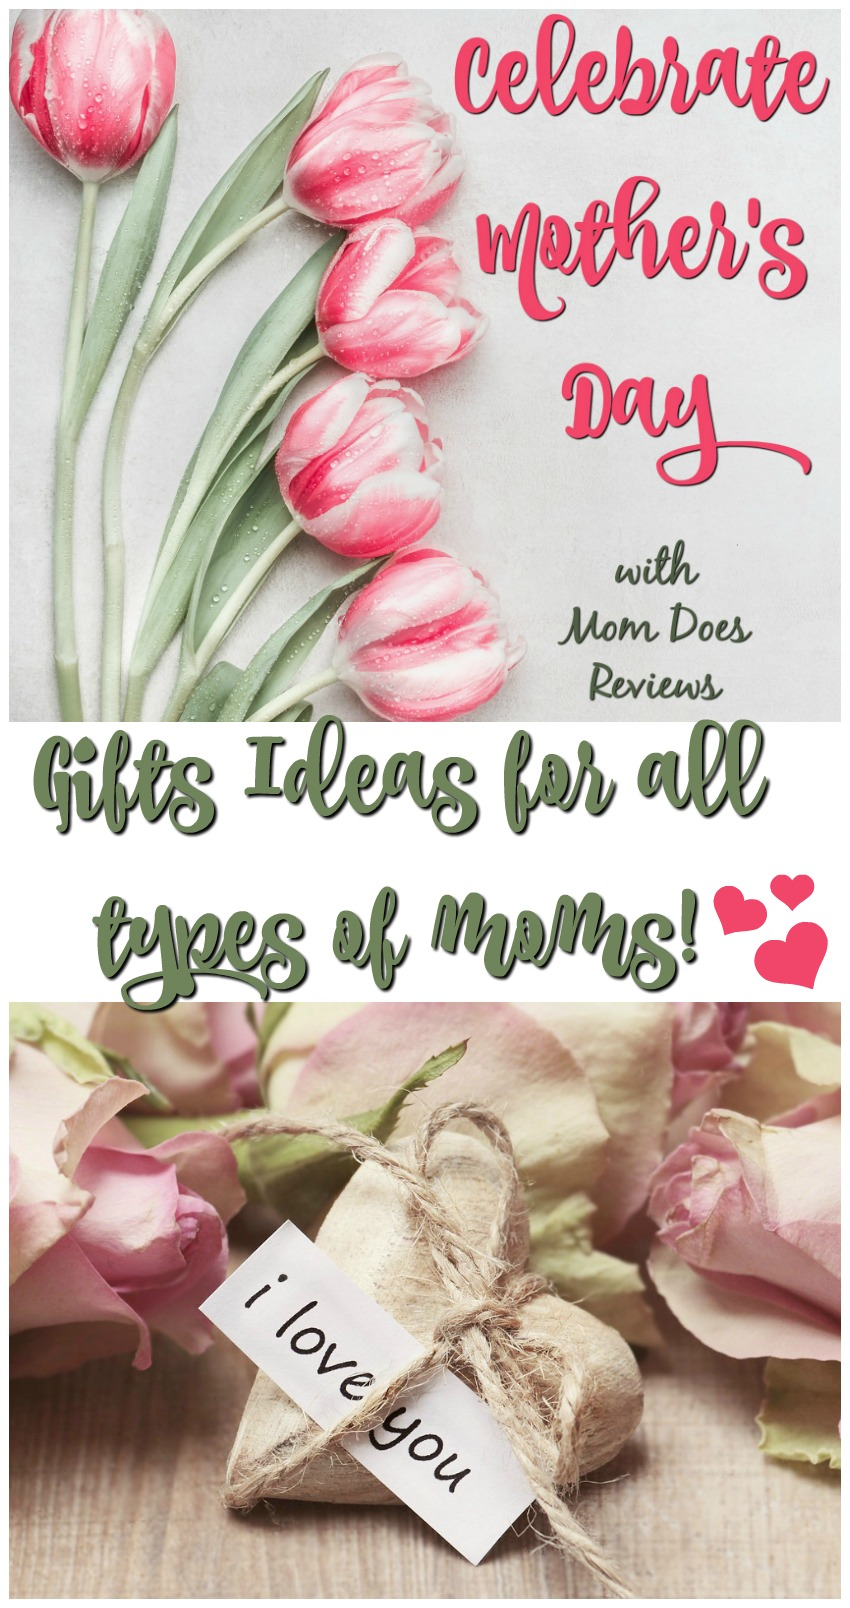 Gifts for Mom 2019 #GiftsforMom19 #gifts #mothersday #giftideas #mom